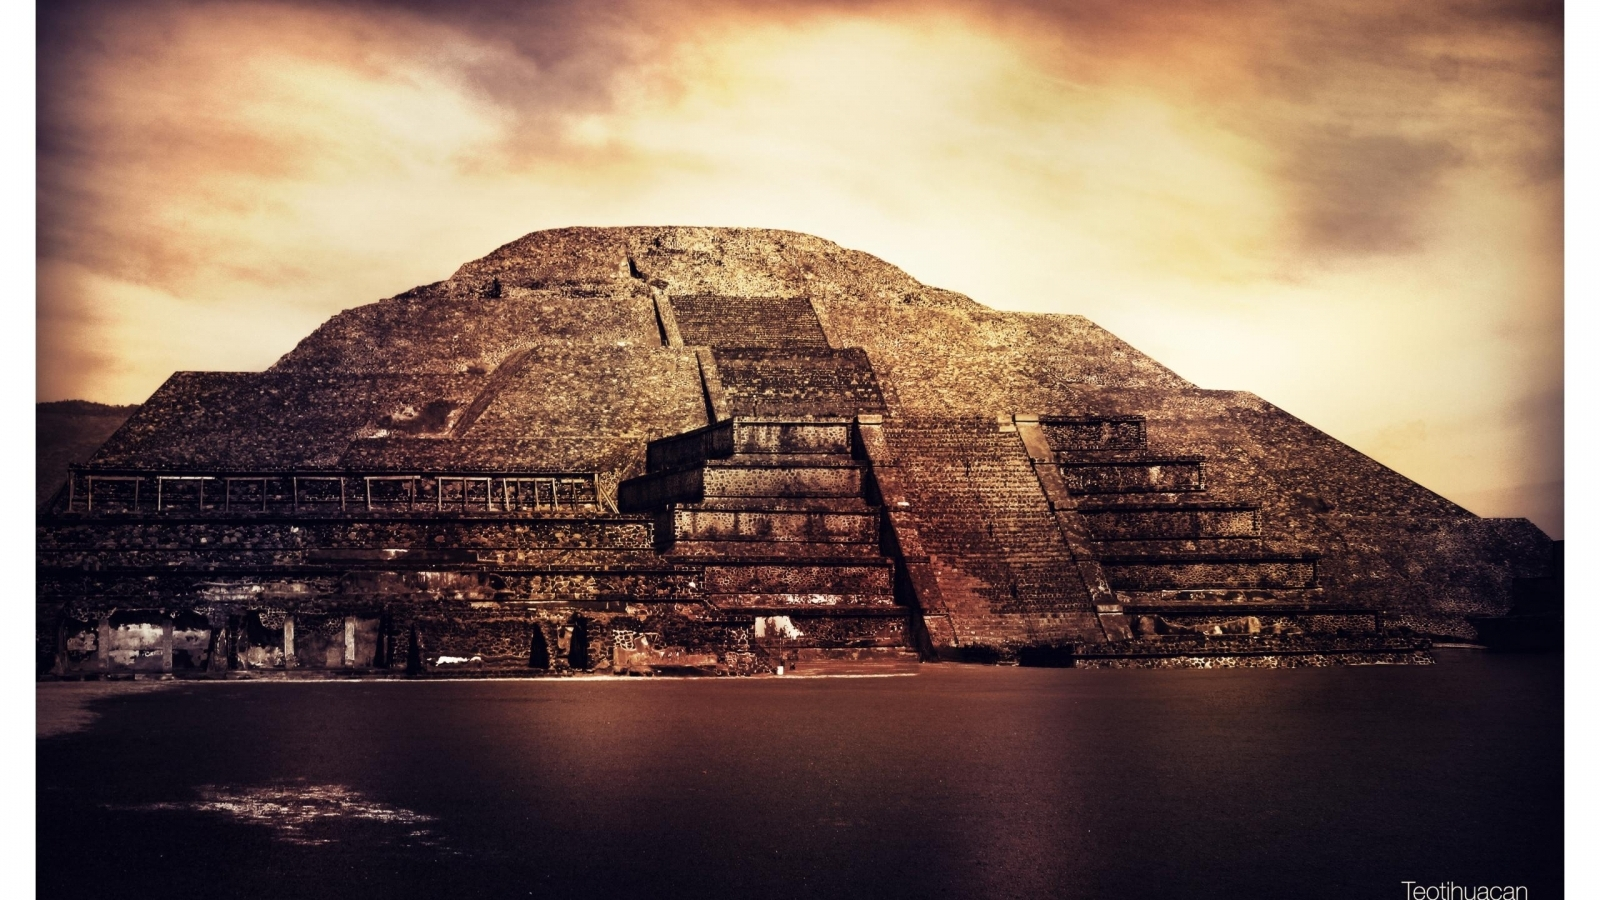 Download Teotihuacan wallpaper in CityWorld wallpapers with all 1416